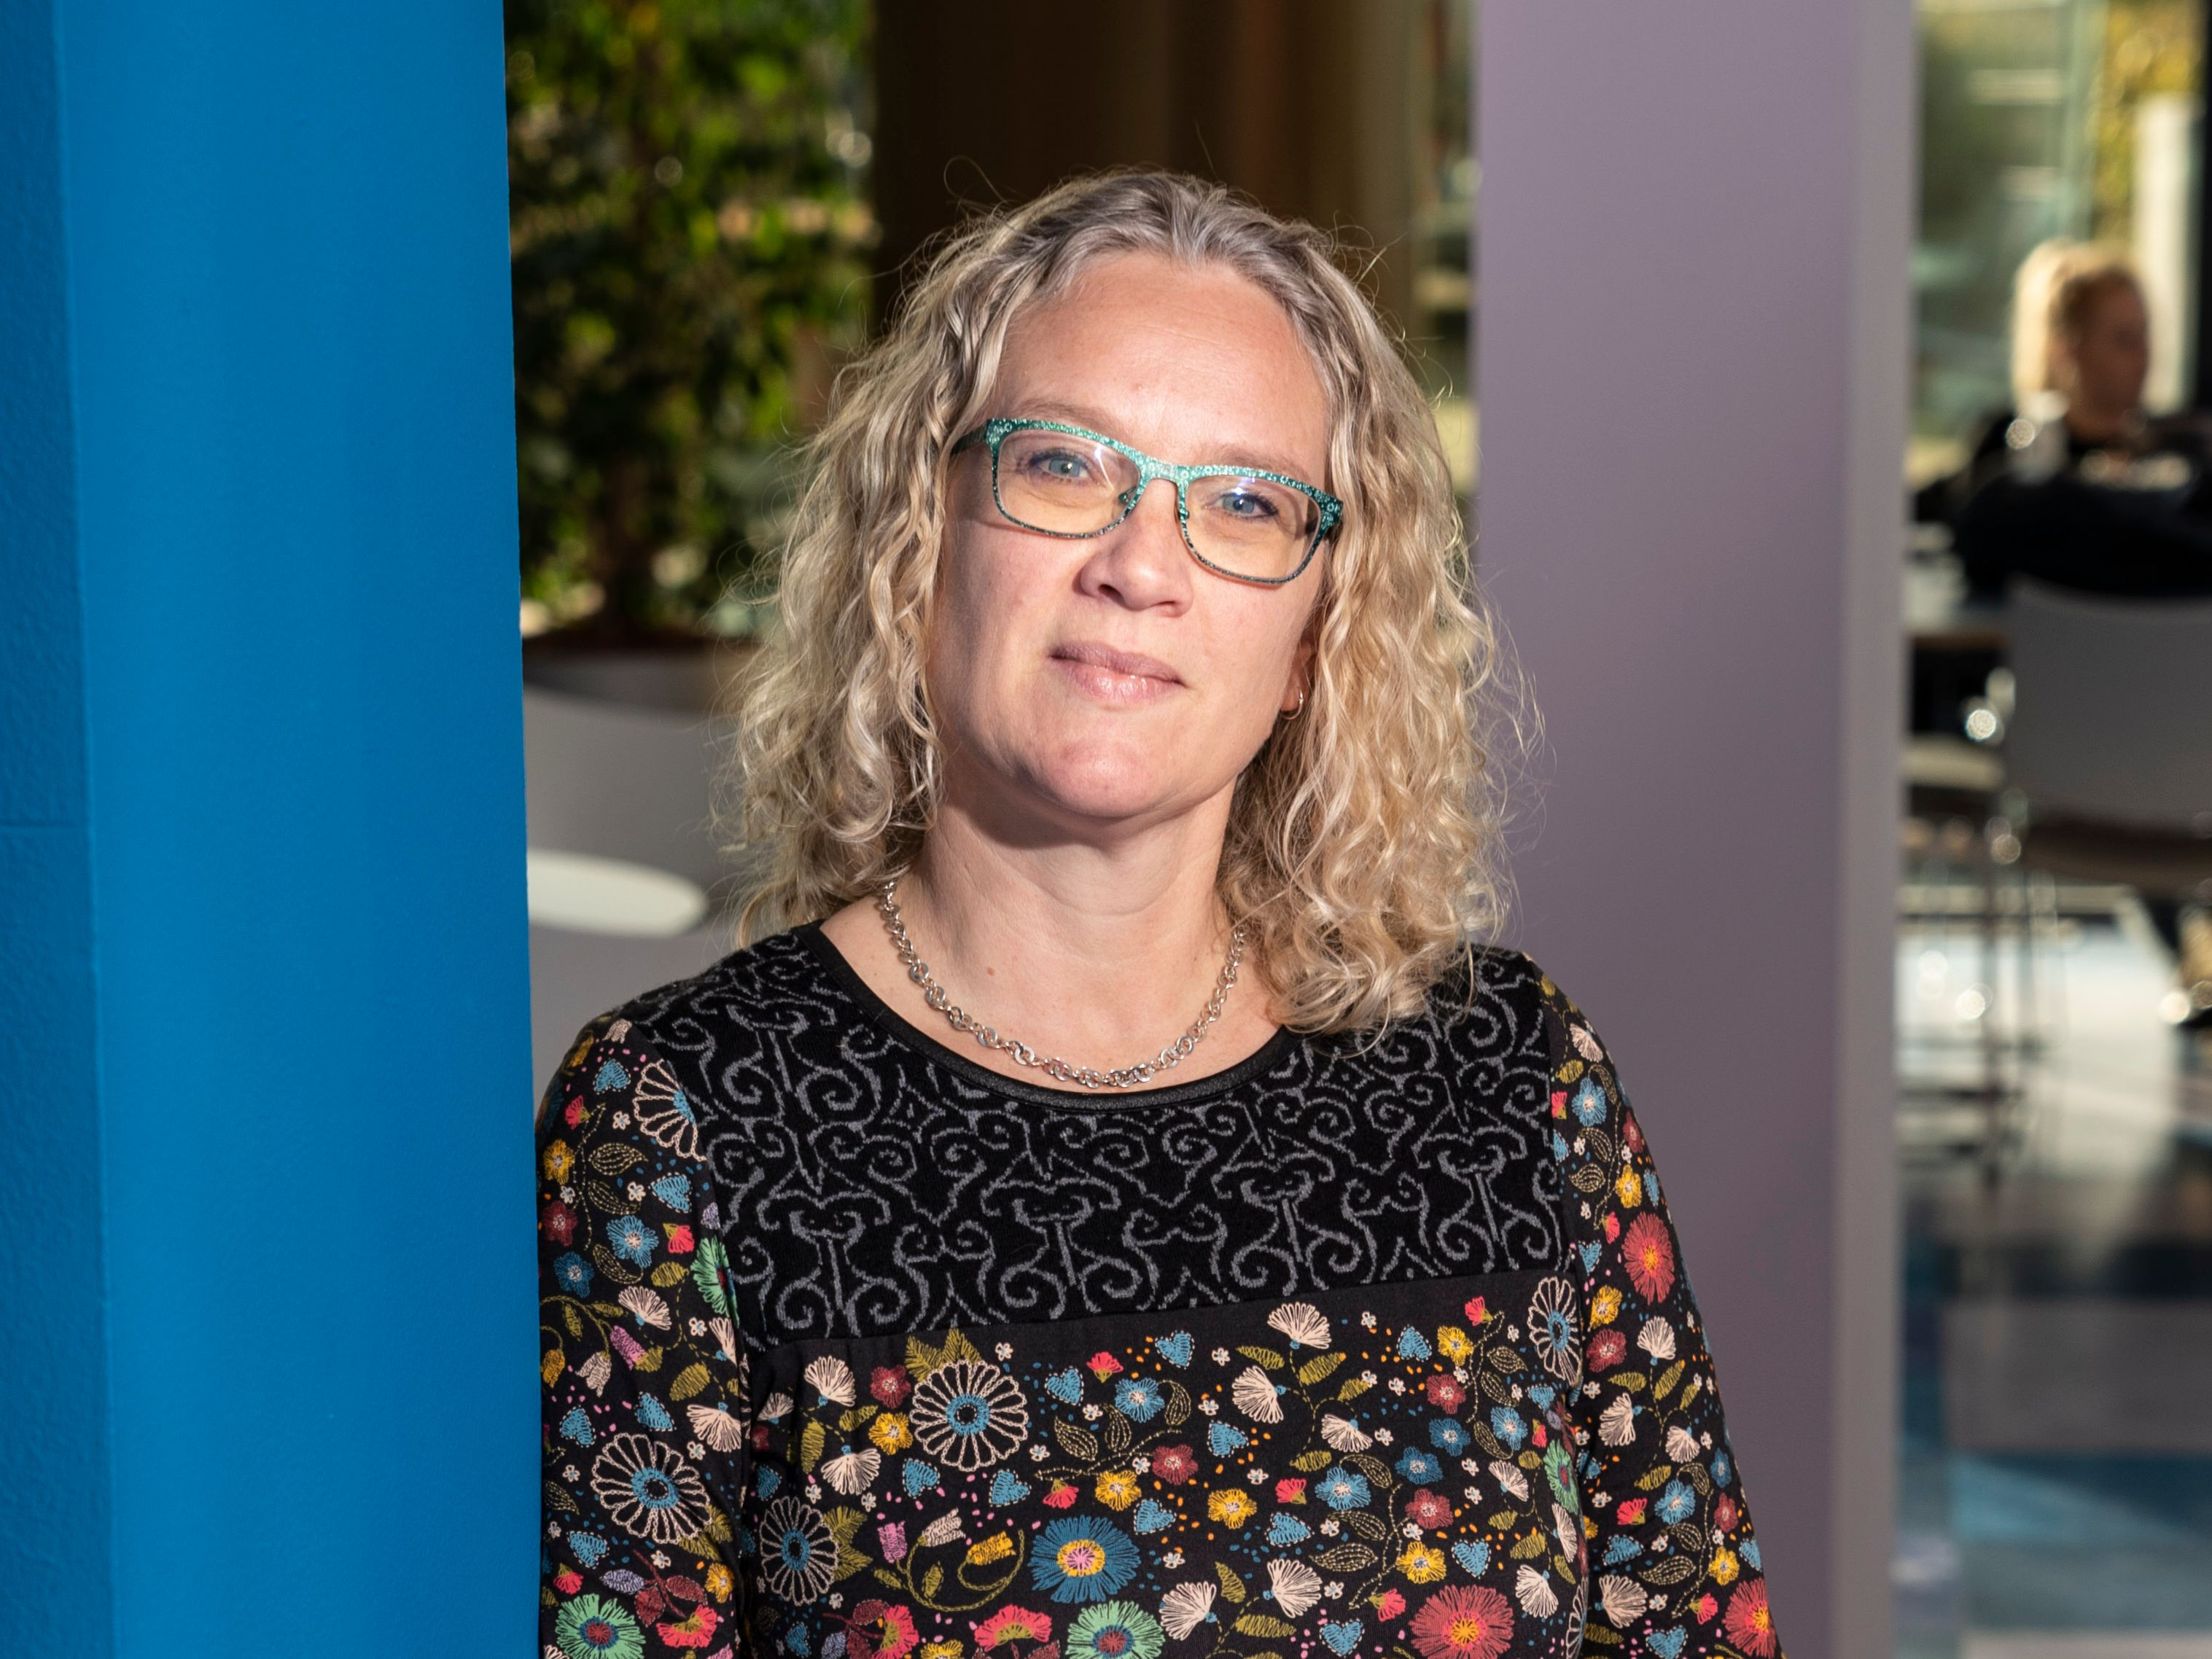 Associate Professor Rian Drogendijk's specialisations include internationalisation of firms, organisation of multinational corporations, cross cultural management, and measures of cultural distance or differences.